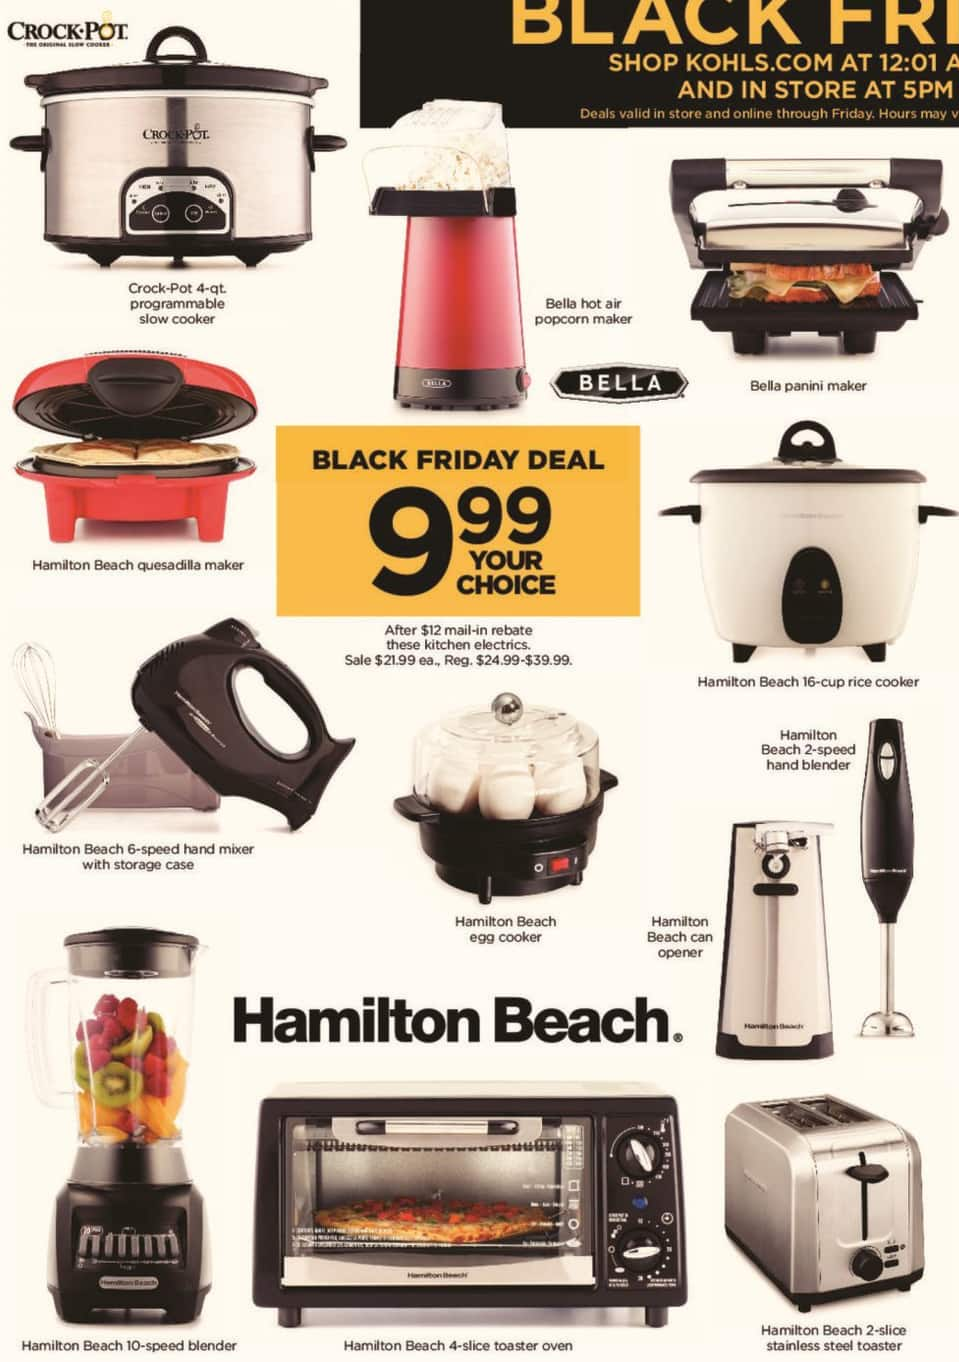 Kohl's Black Friday: Select Small Appliances: Crock-Pot 4-qt Programmable Slow Cooker, Hamilton Beach 10-Speed Blender & More - Your Choice for $9.99 after $12.00 rebate